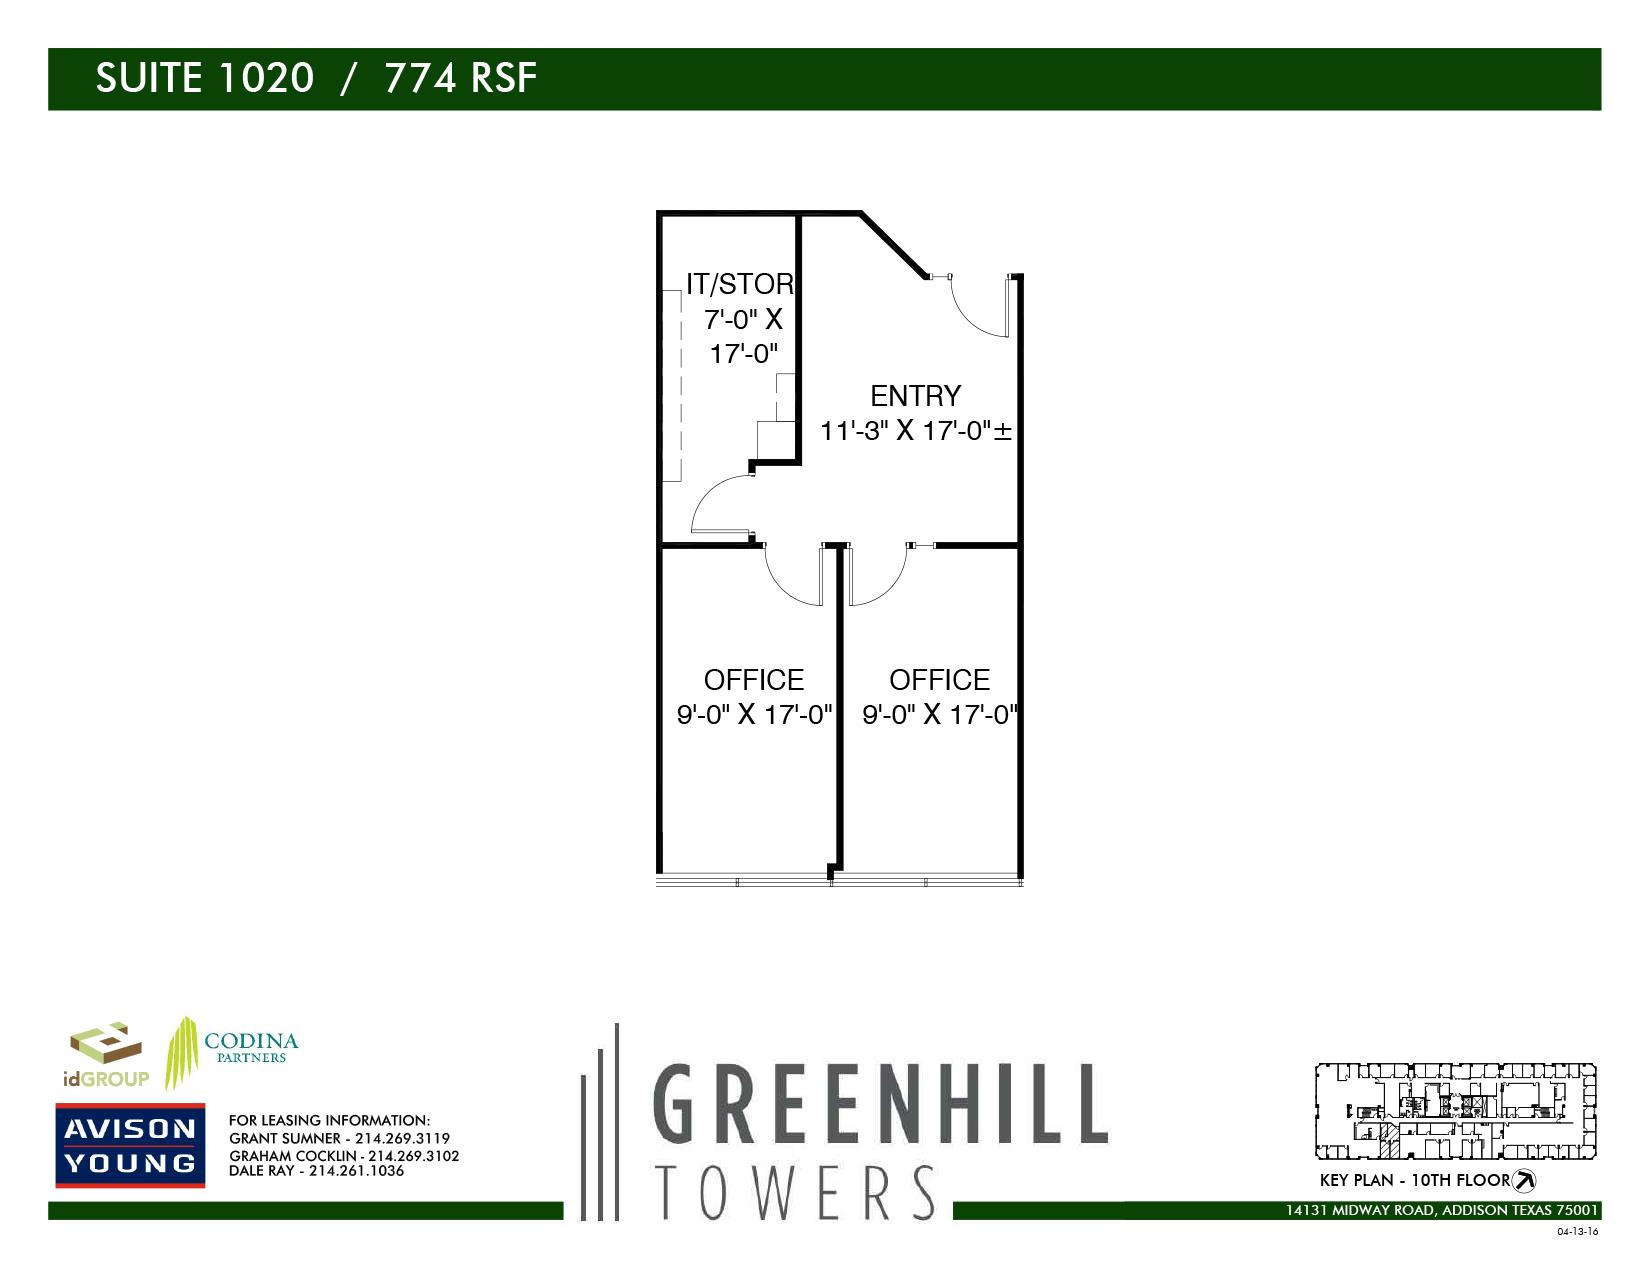 Greenhill Towers | Codina Partners - Suite 1020 - Shared Office